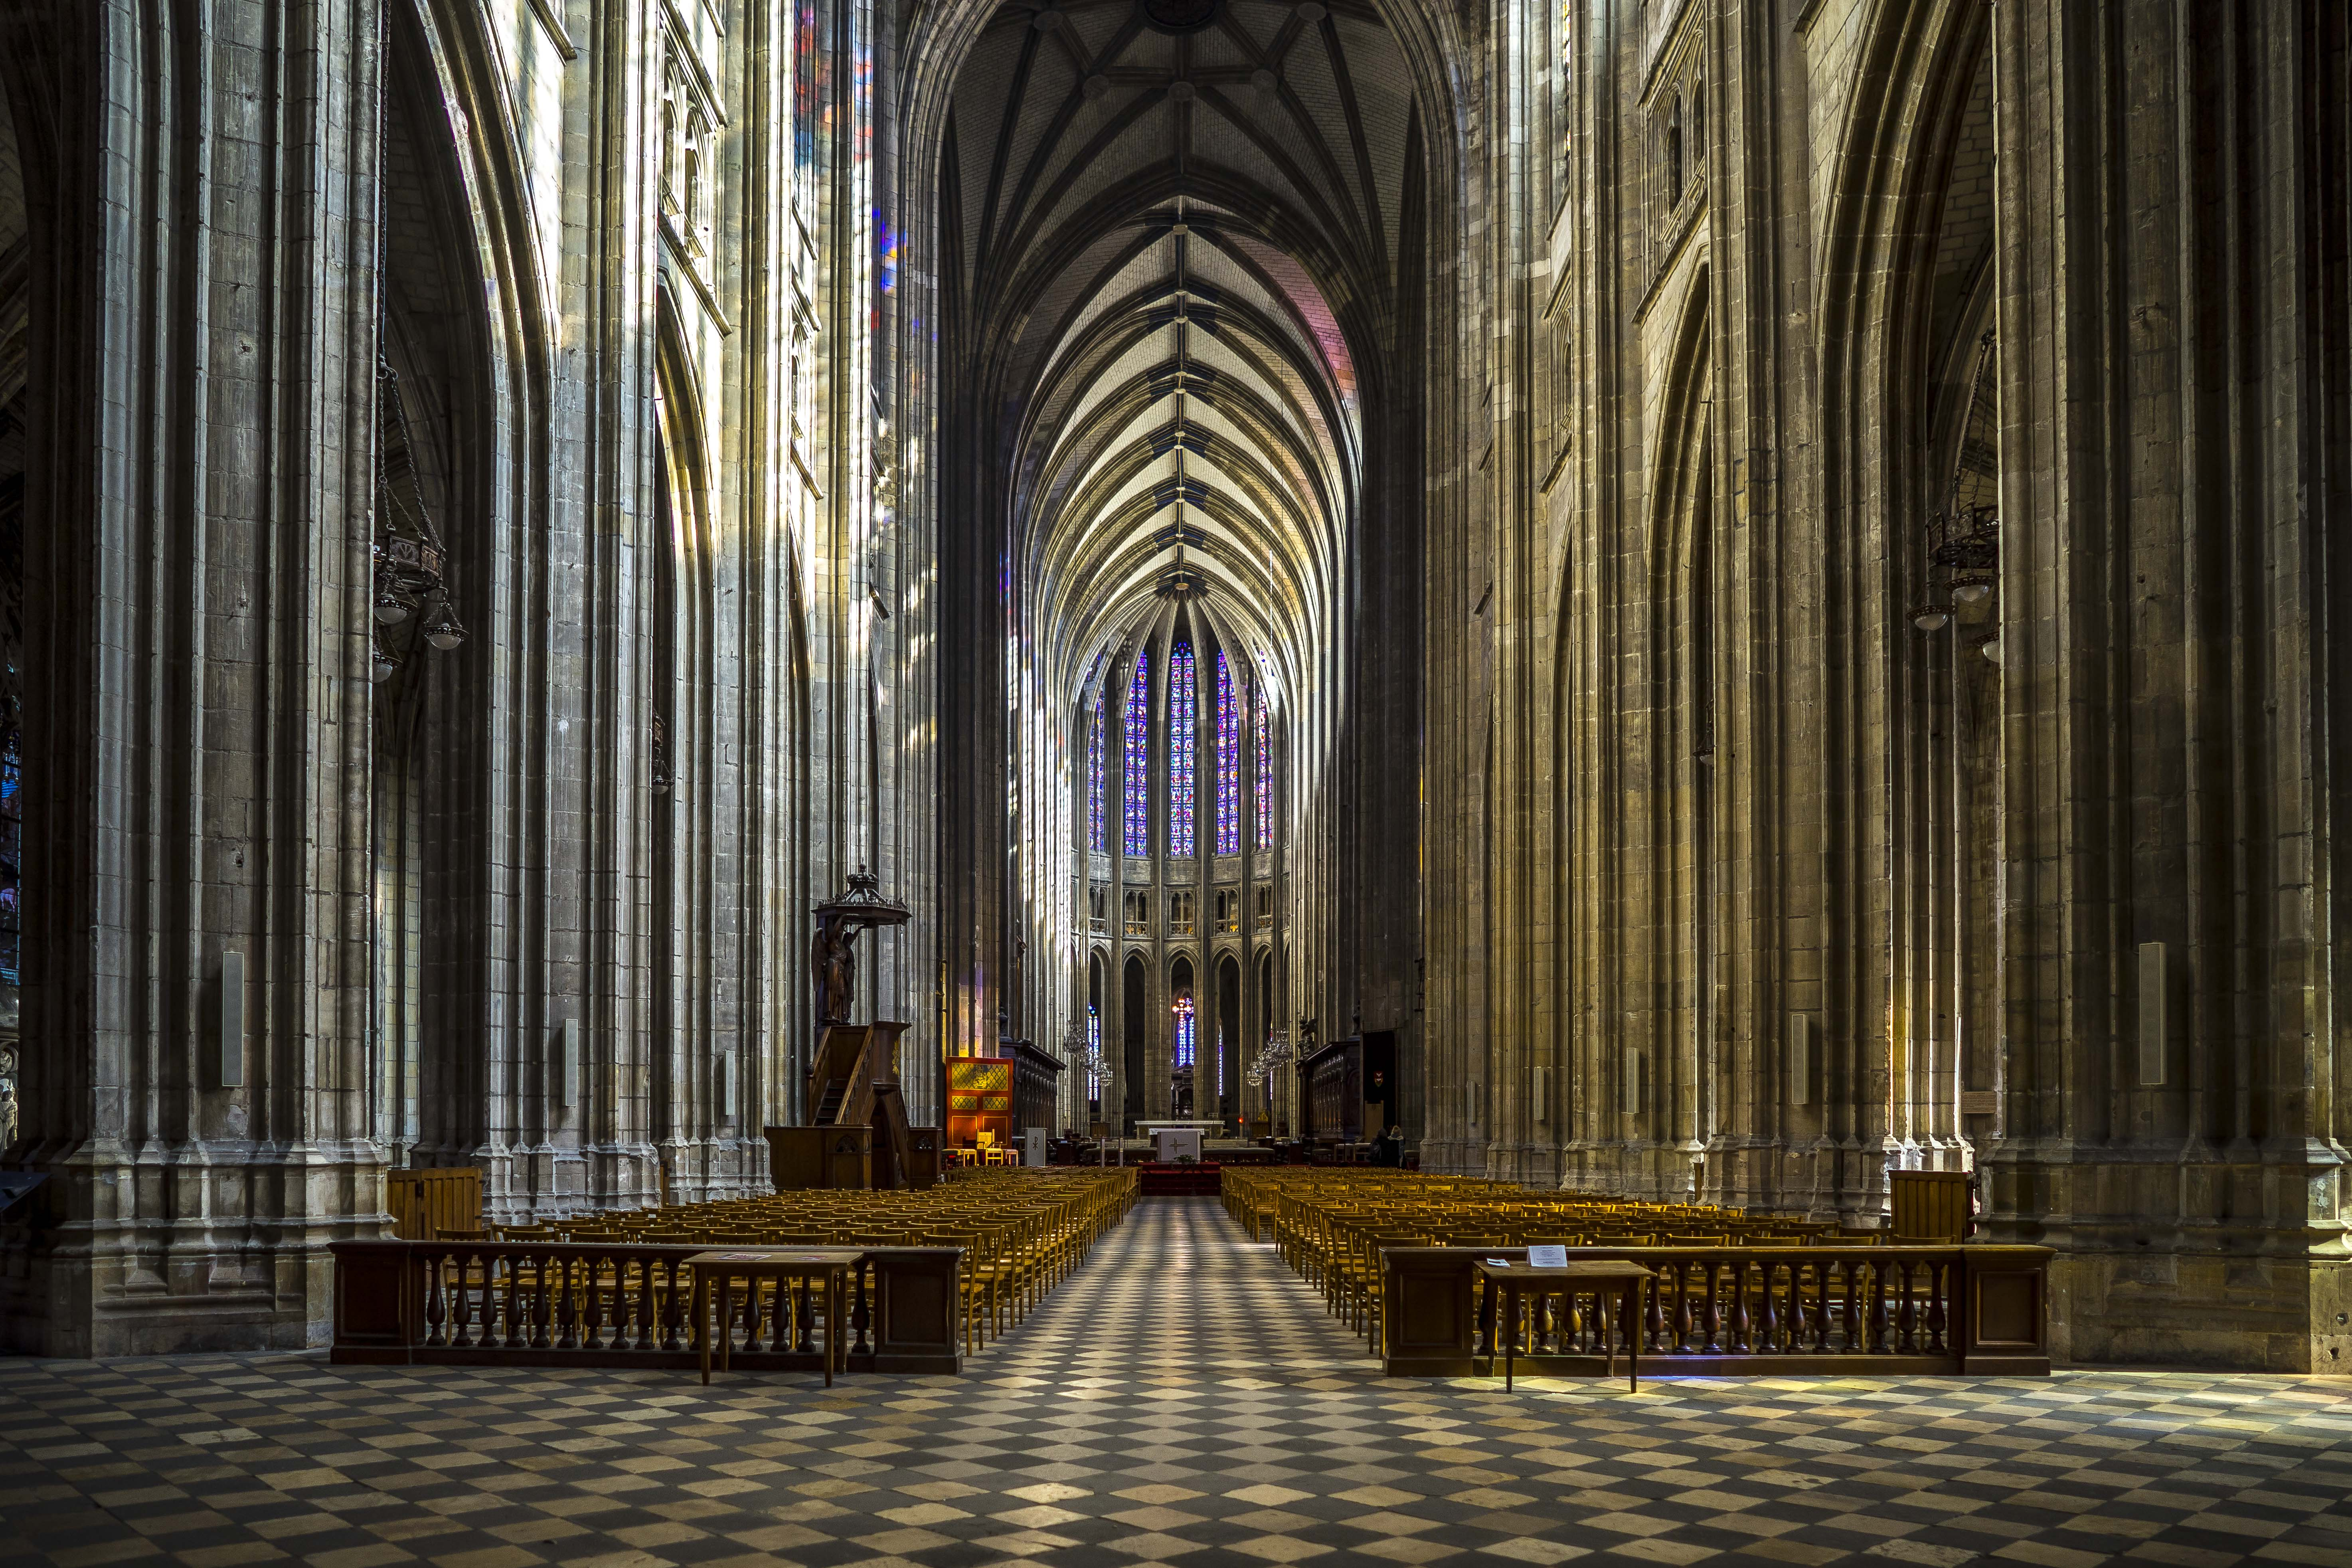 Orléans, France - Inside the Cathedral